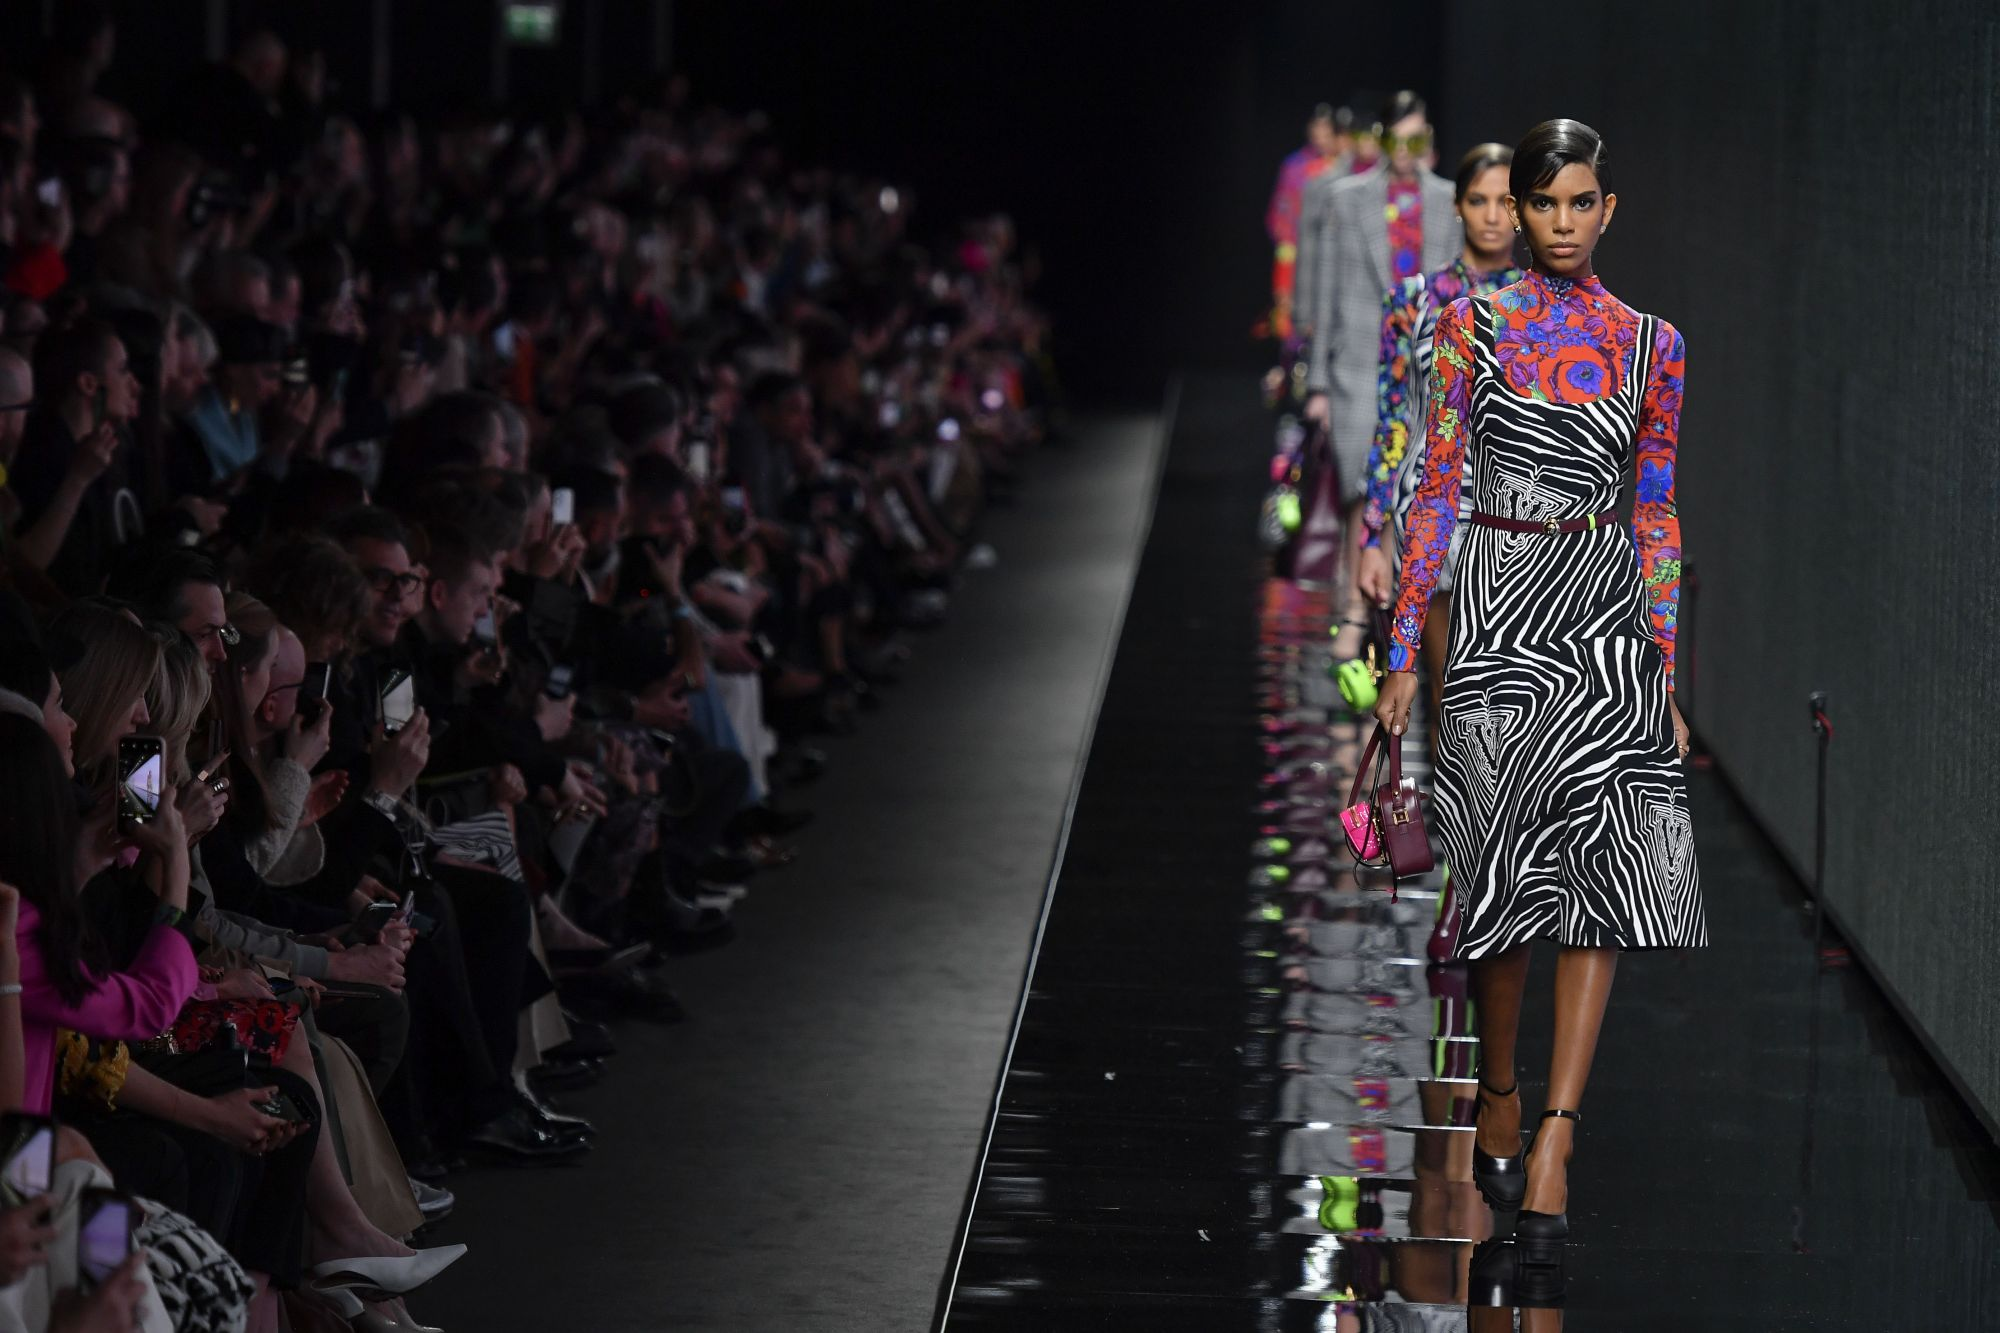 MILAN, ITALY - FEBRUARY 21: A model walks the runway during the Versace fashion show as part of Milan Fashion Week Fall/Winter 2020-2021 on February 21, 2020 in Milan, Italy. (Photo by Victor VIRGILE/Gamma-Rapho via Getty Images)